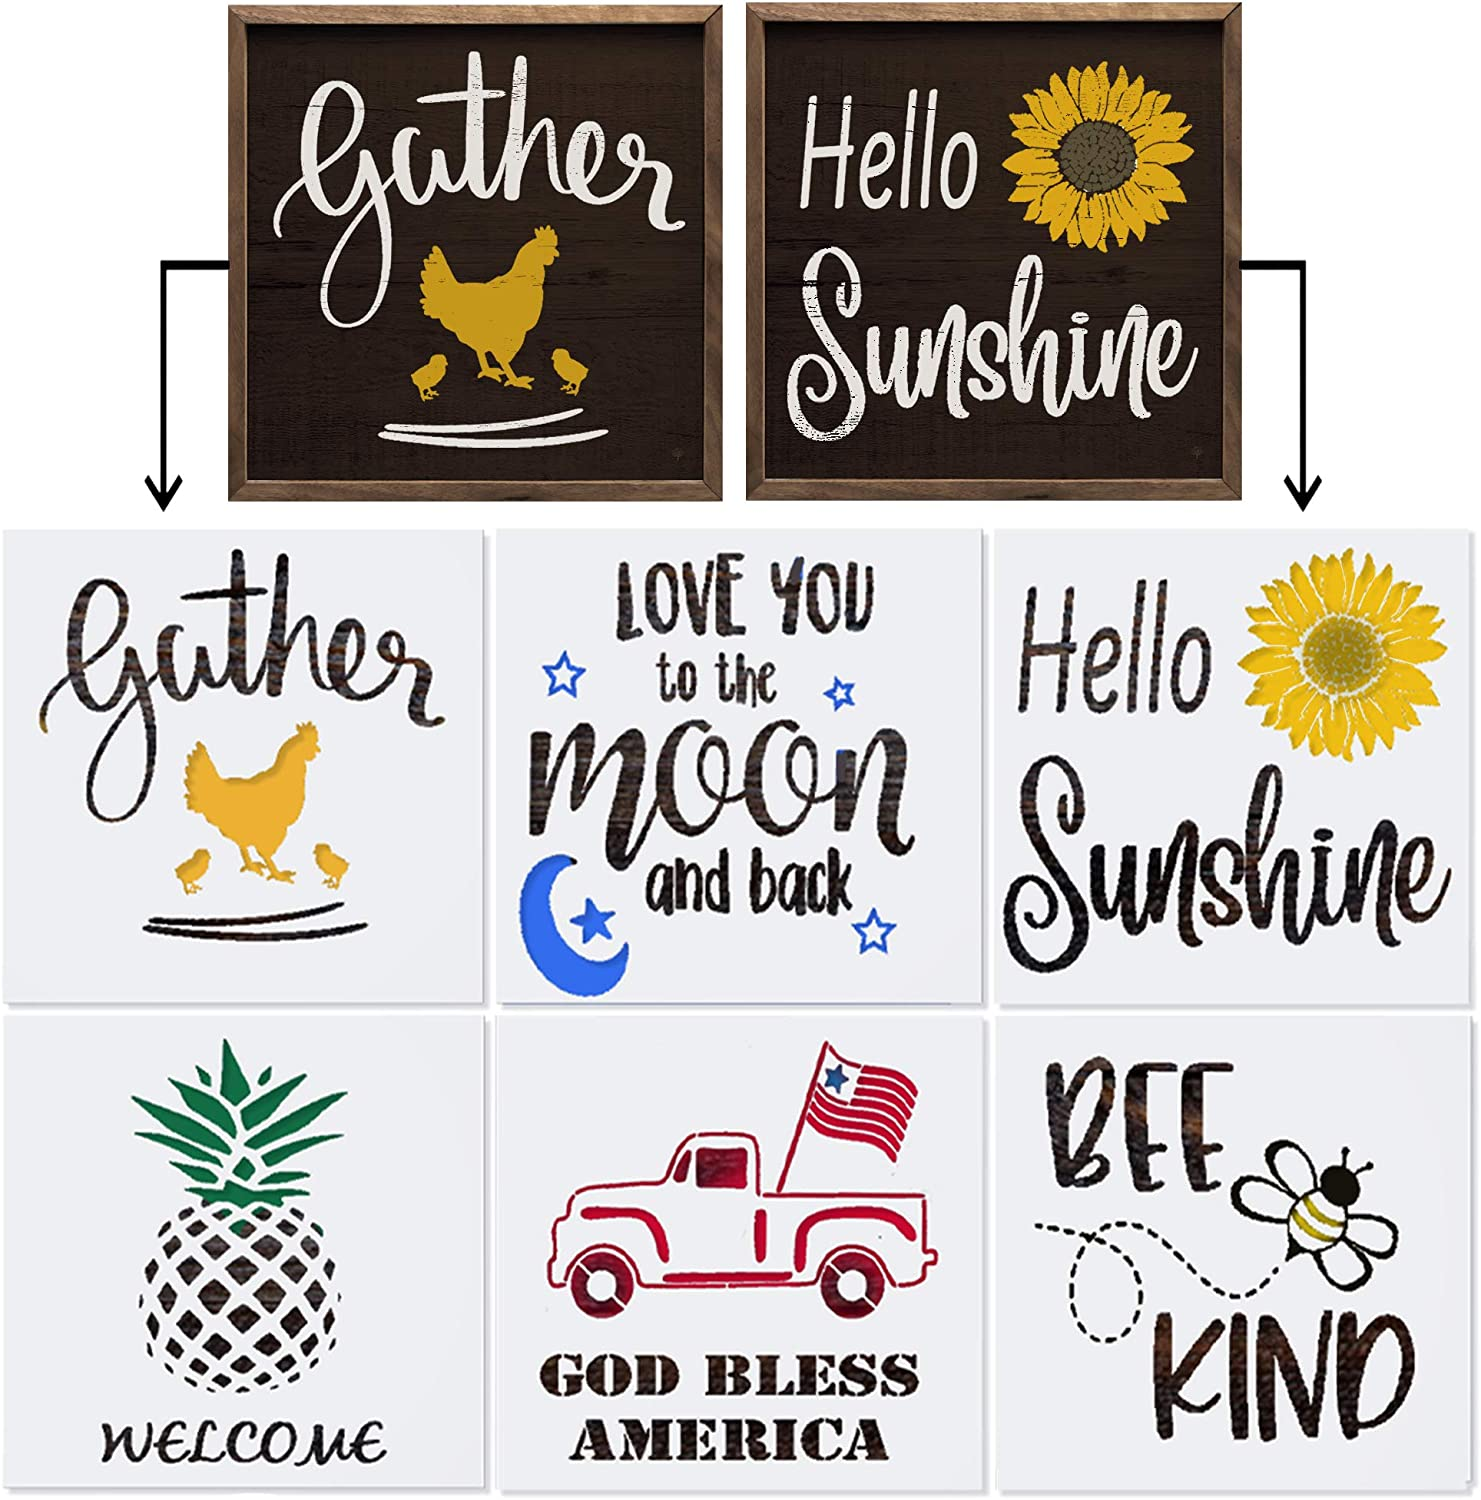 Stencils for Painting on Wood & More | Large Word Stencil Set for DIY Crafts | Reusable Farmhouse Stencils for Wood Signs, Canvas & Wall Decor | Includes Gather, Hello Sunshine and a Welcome Stencil